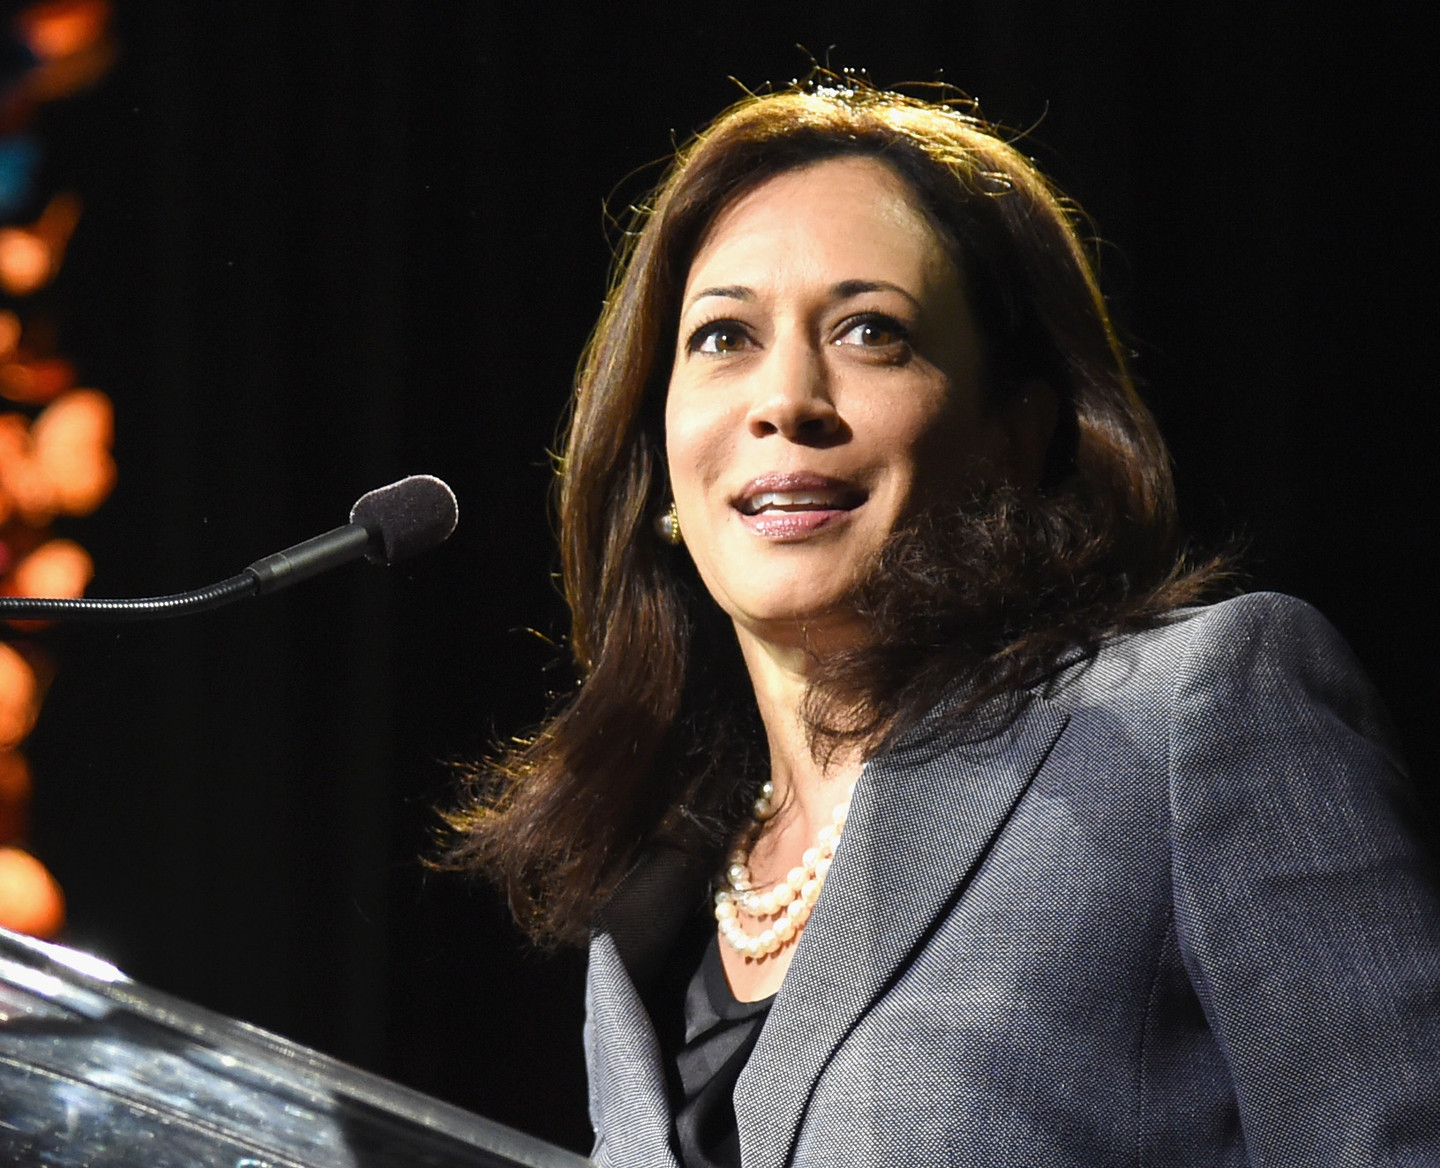 California Attorney General Kamala Harris has unveiled a Web-based data tool to aid transparency in criminal justice.